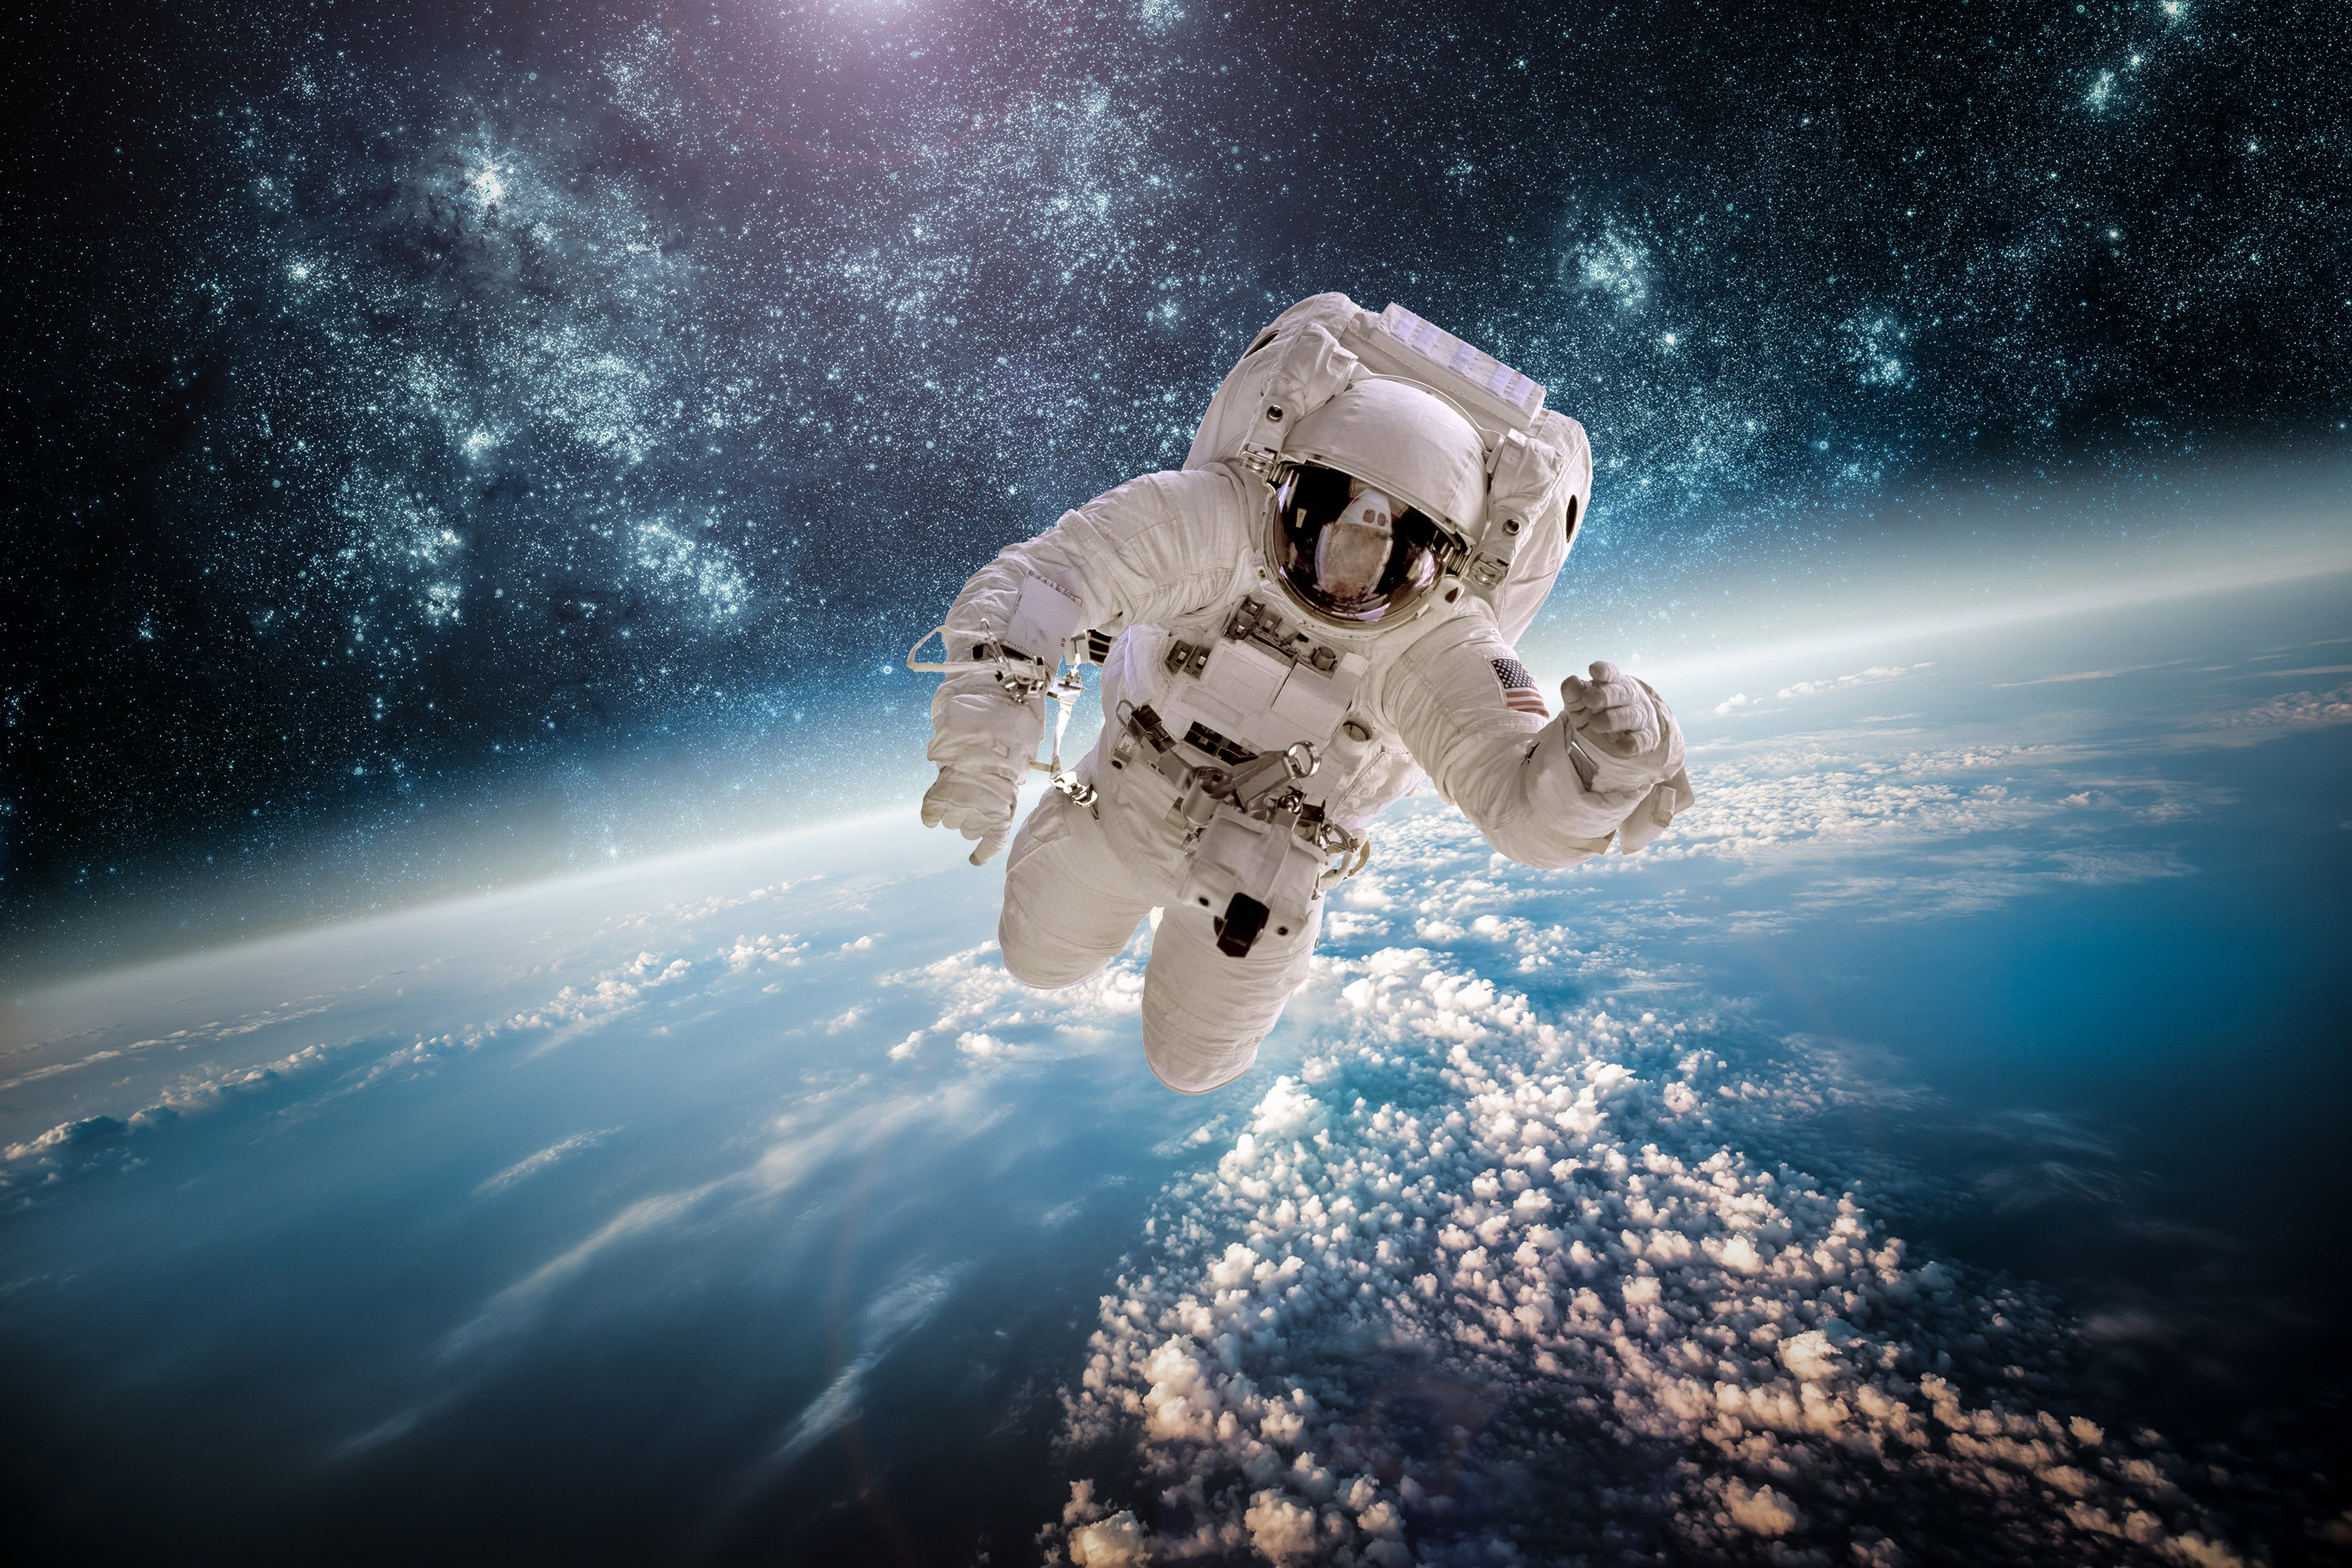 Astronaut Wallpaper High Definition Backgrounds By Delman Black 2017 03 20